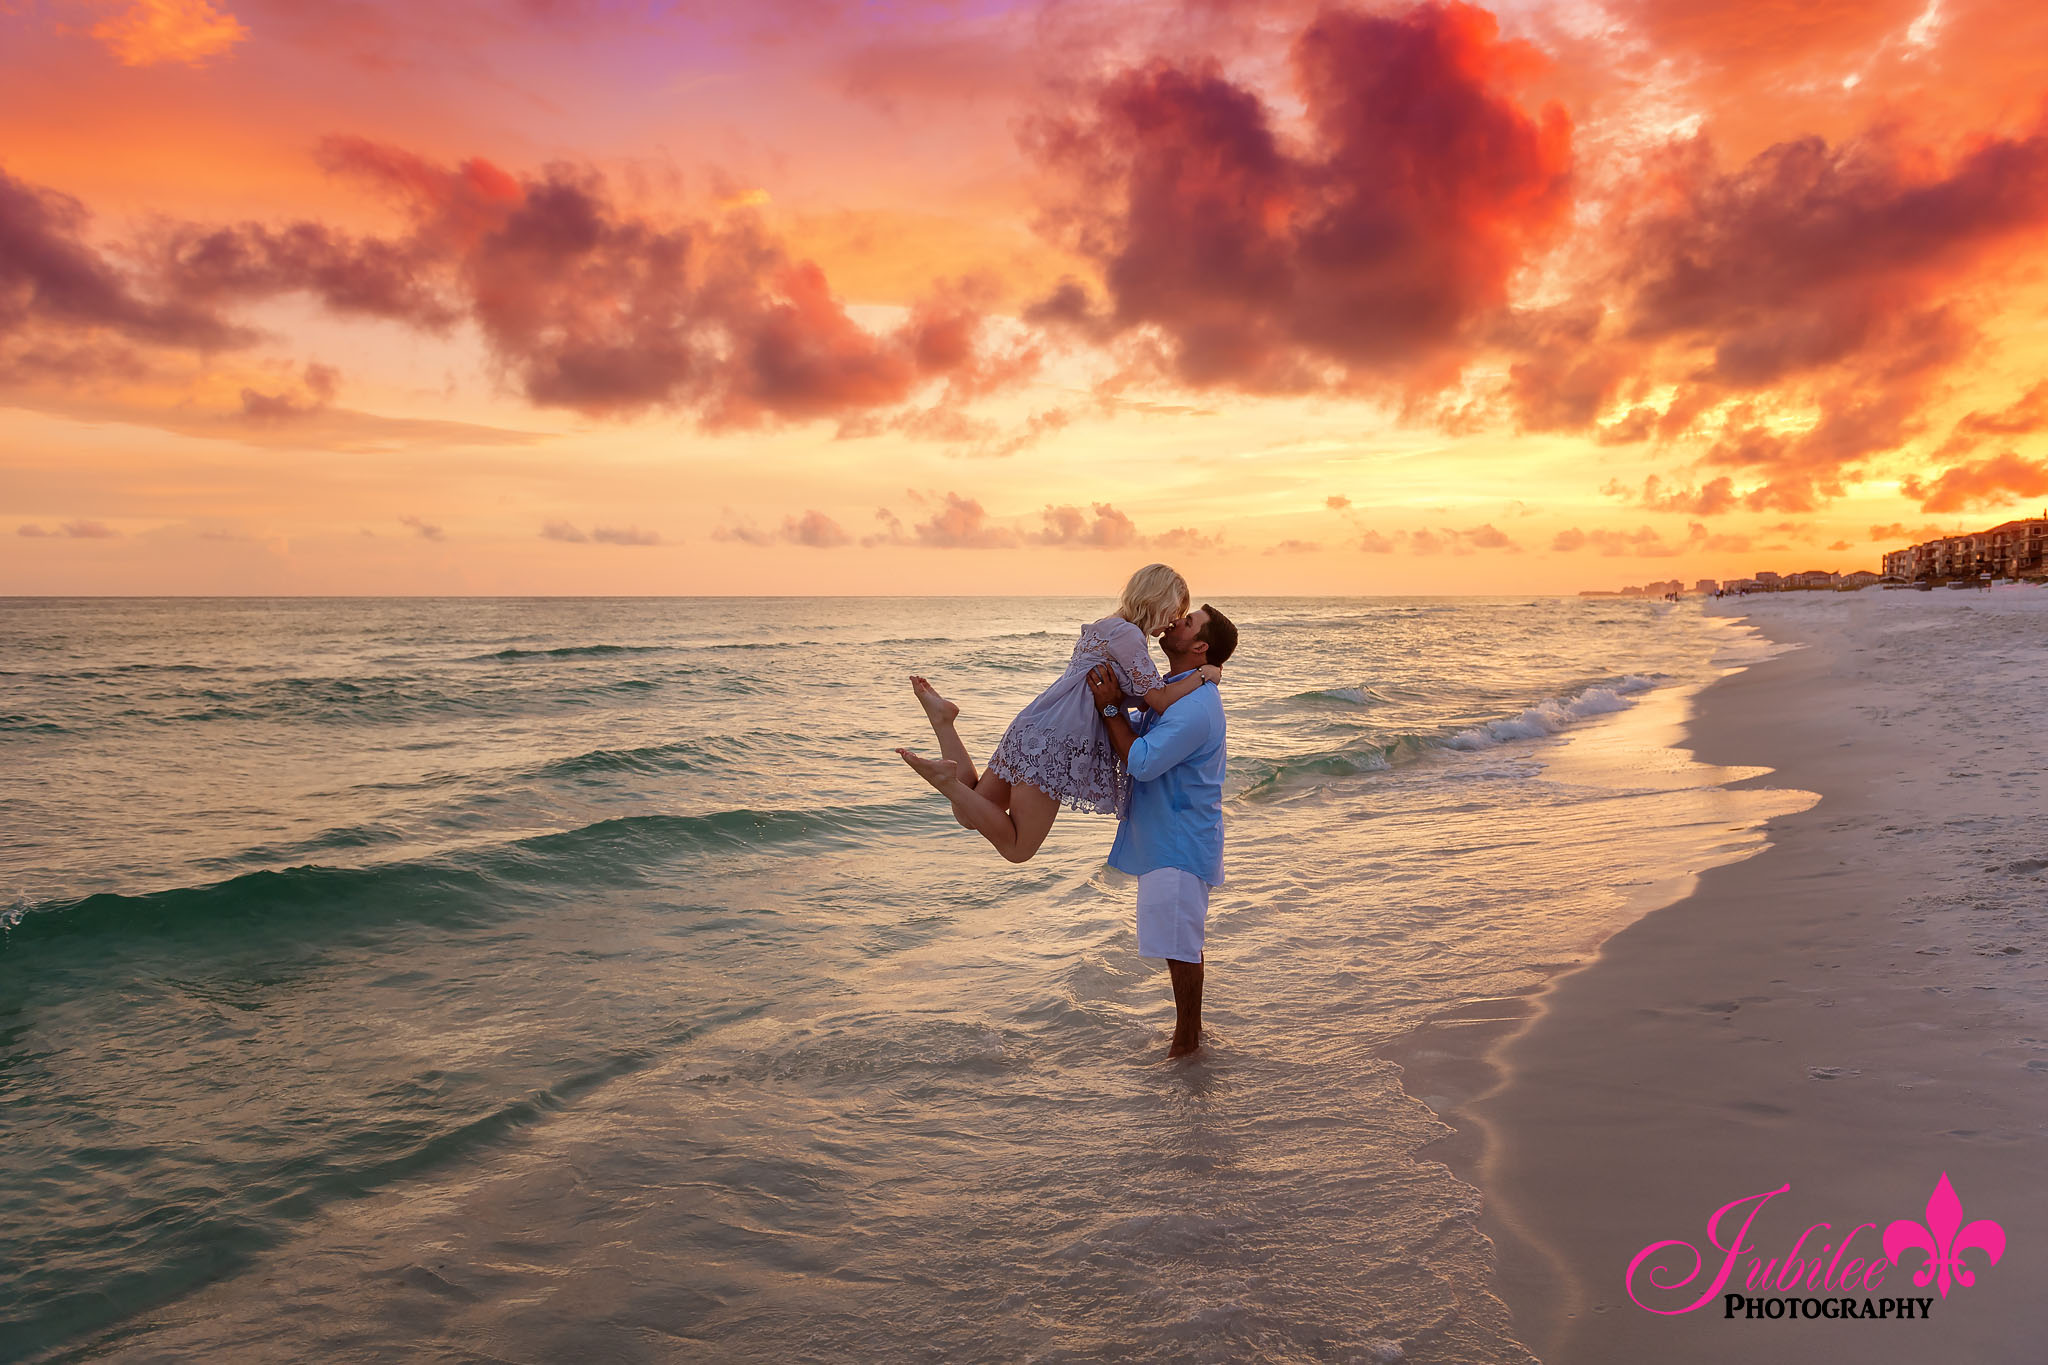 destin_photographer_6041